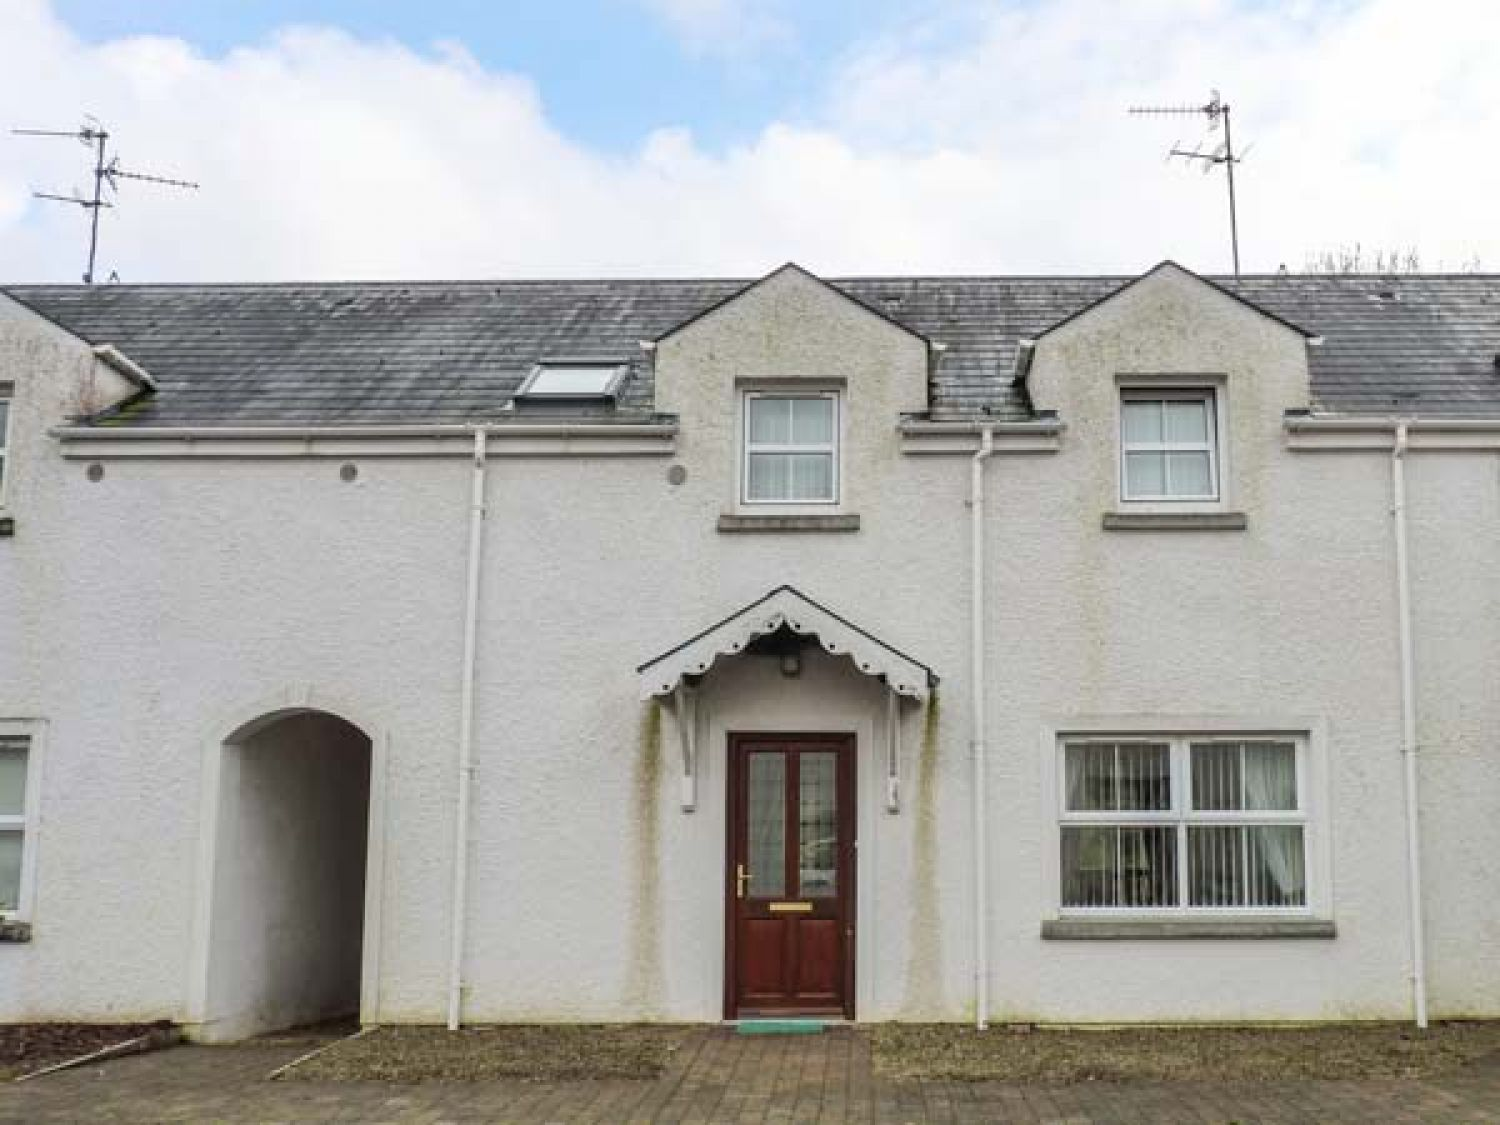 4 Mac Nean Court - North Ireland - 931995 - photo 1